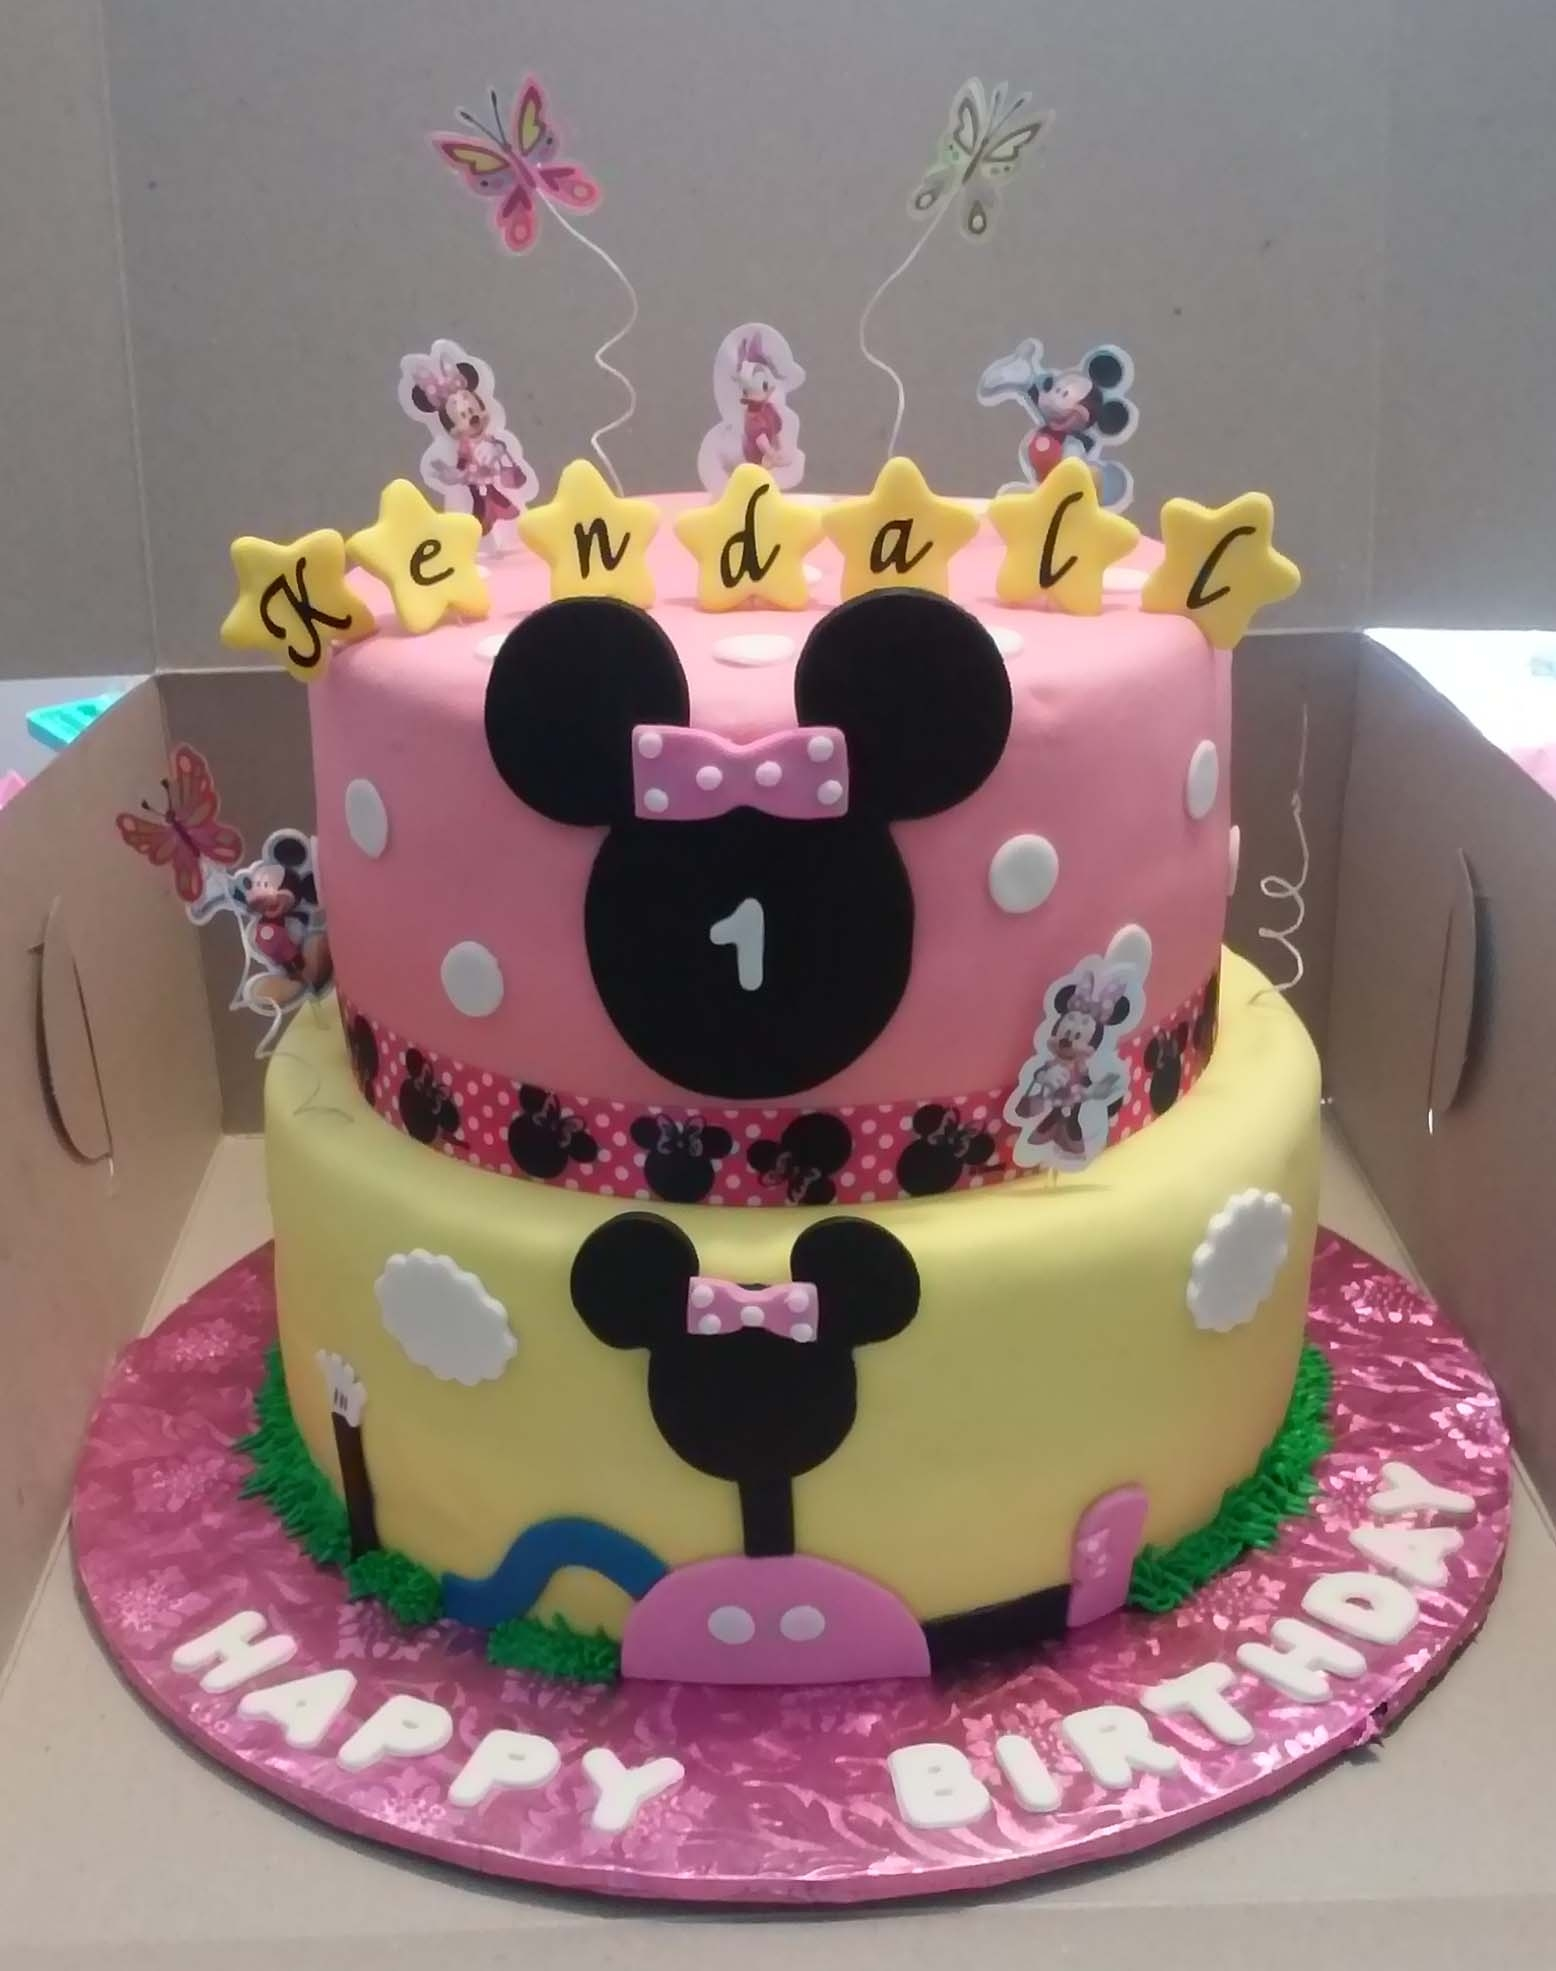 2 Tier Minnie Mouse Clubhouse Themed Birthday Cake CakeCentralcom